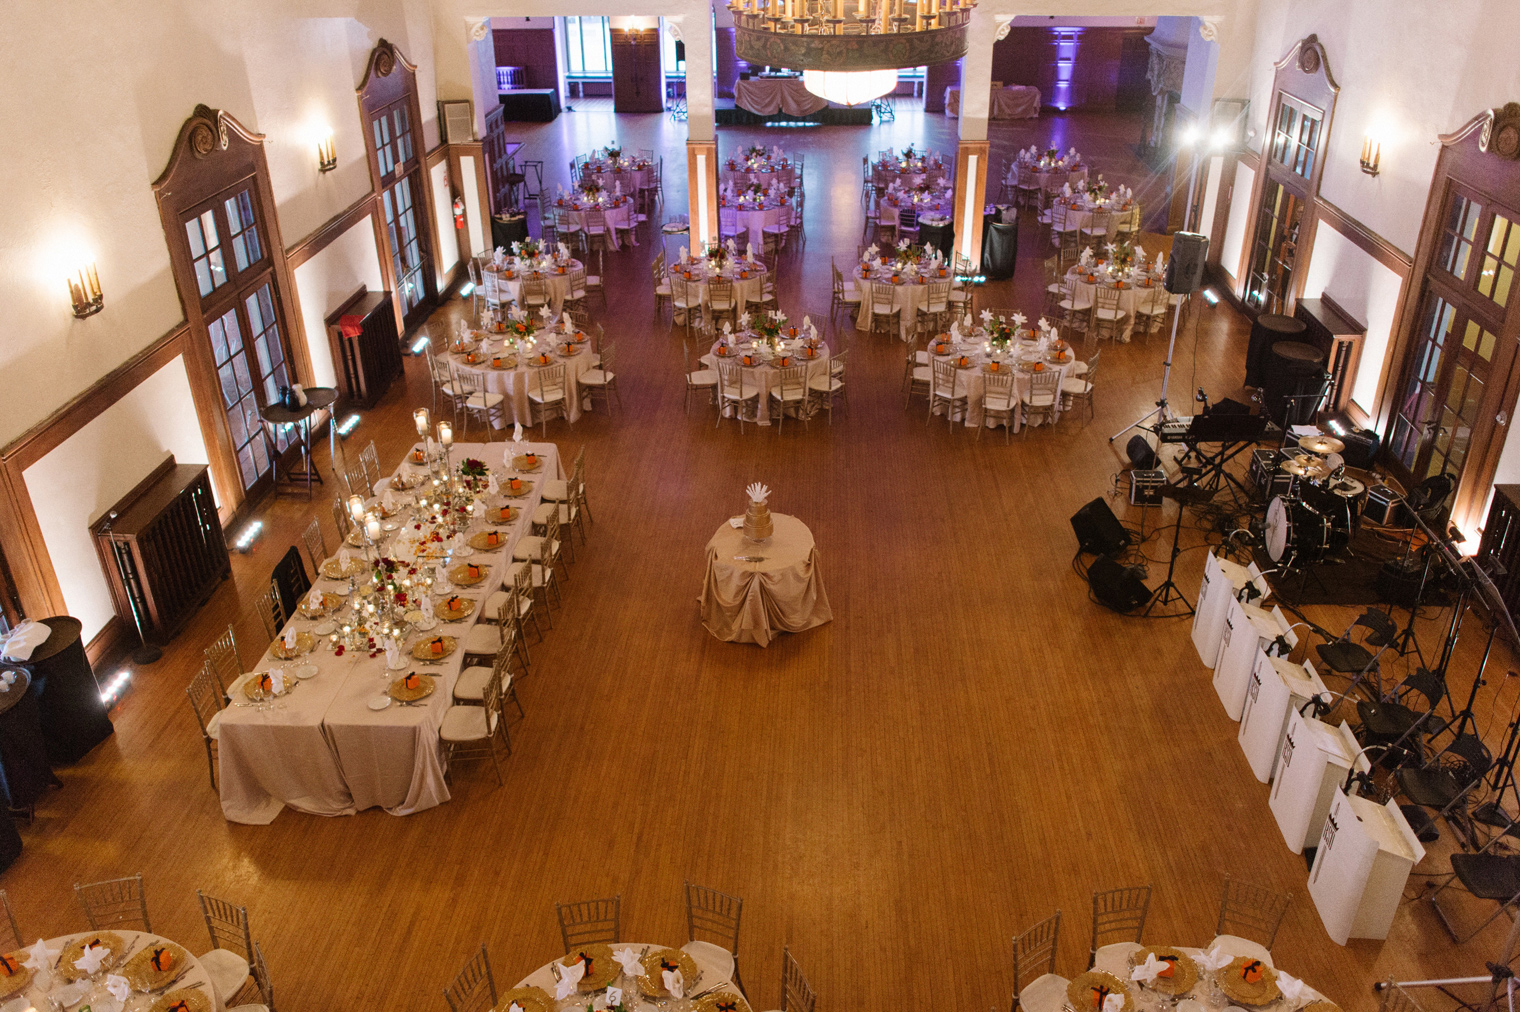 The ballroom at the Detroit Yacht Club ready for a black tie wedding.